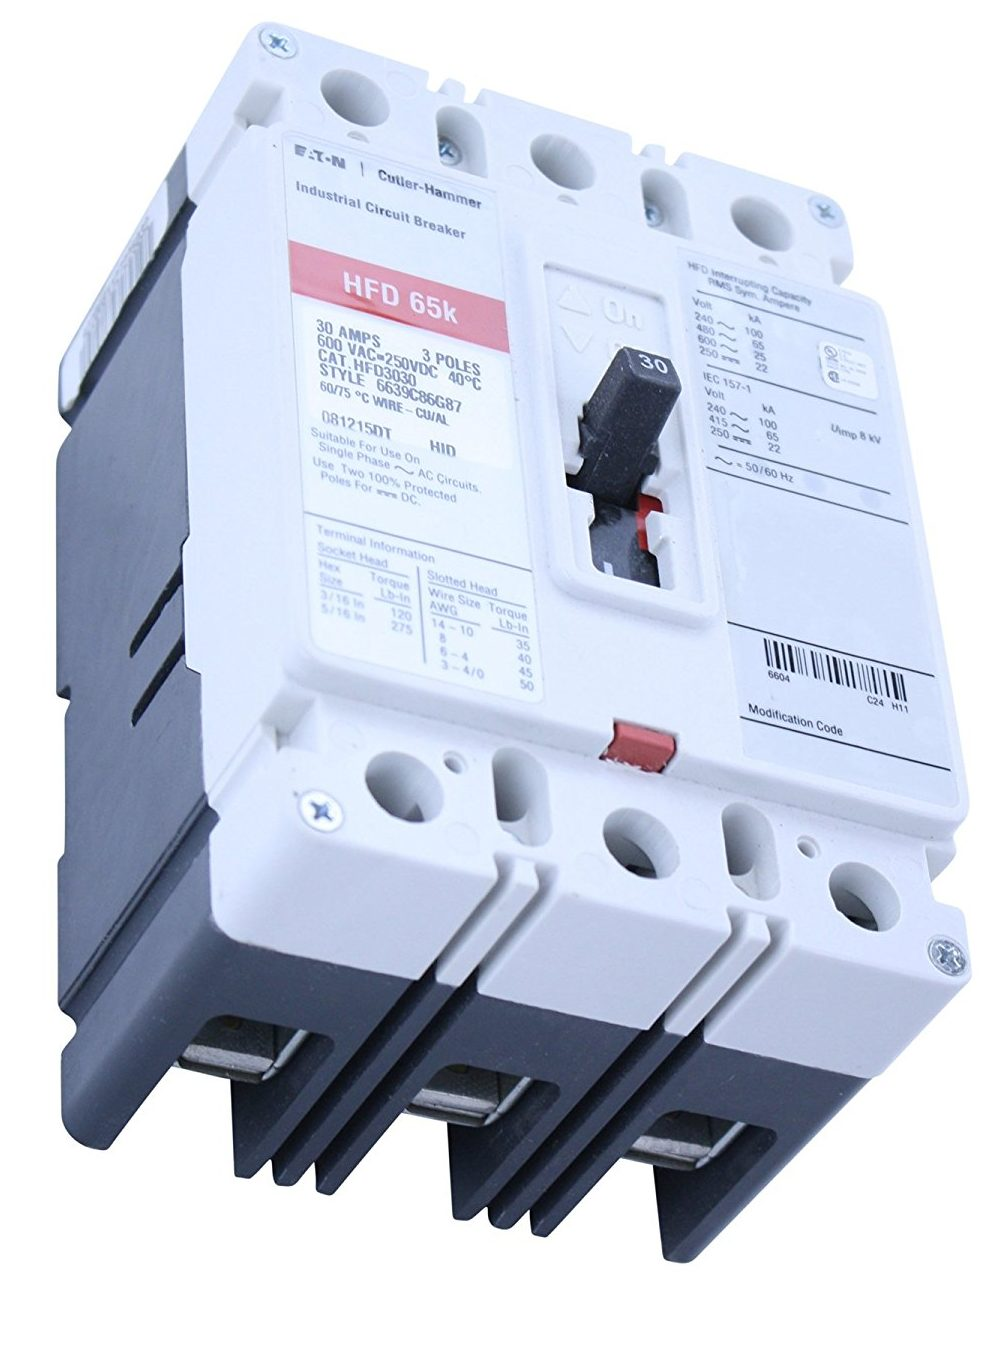 Reliable Protection With Electronic Device Circuit Breakers Ee Breaker Mcb Is A Designed To Protect Circuit39s Publishers